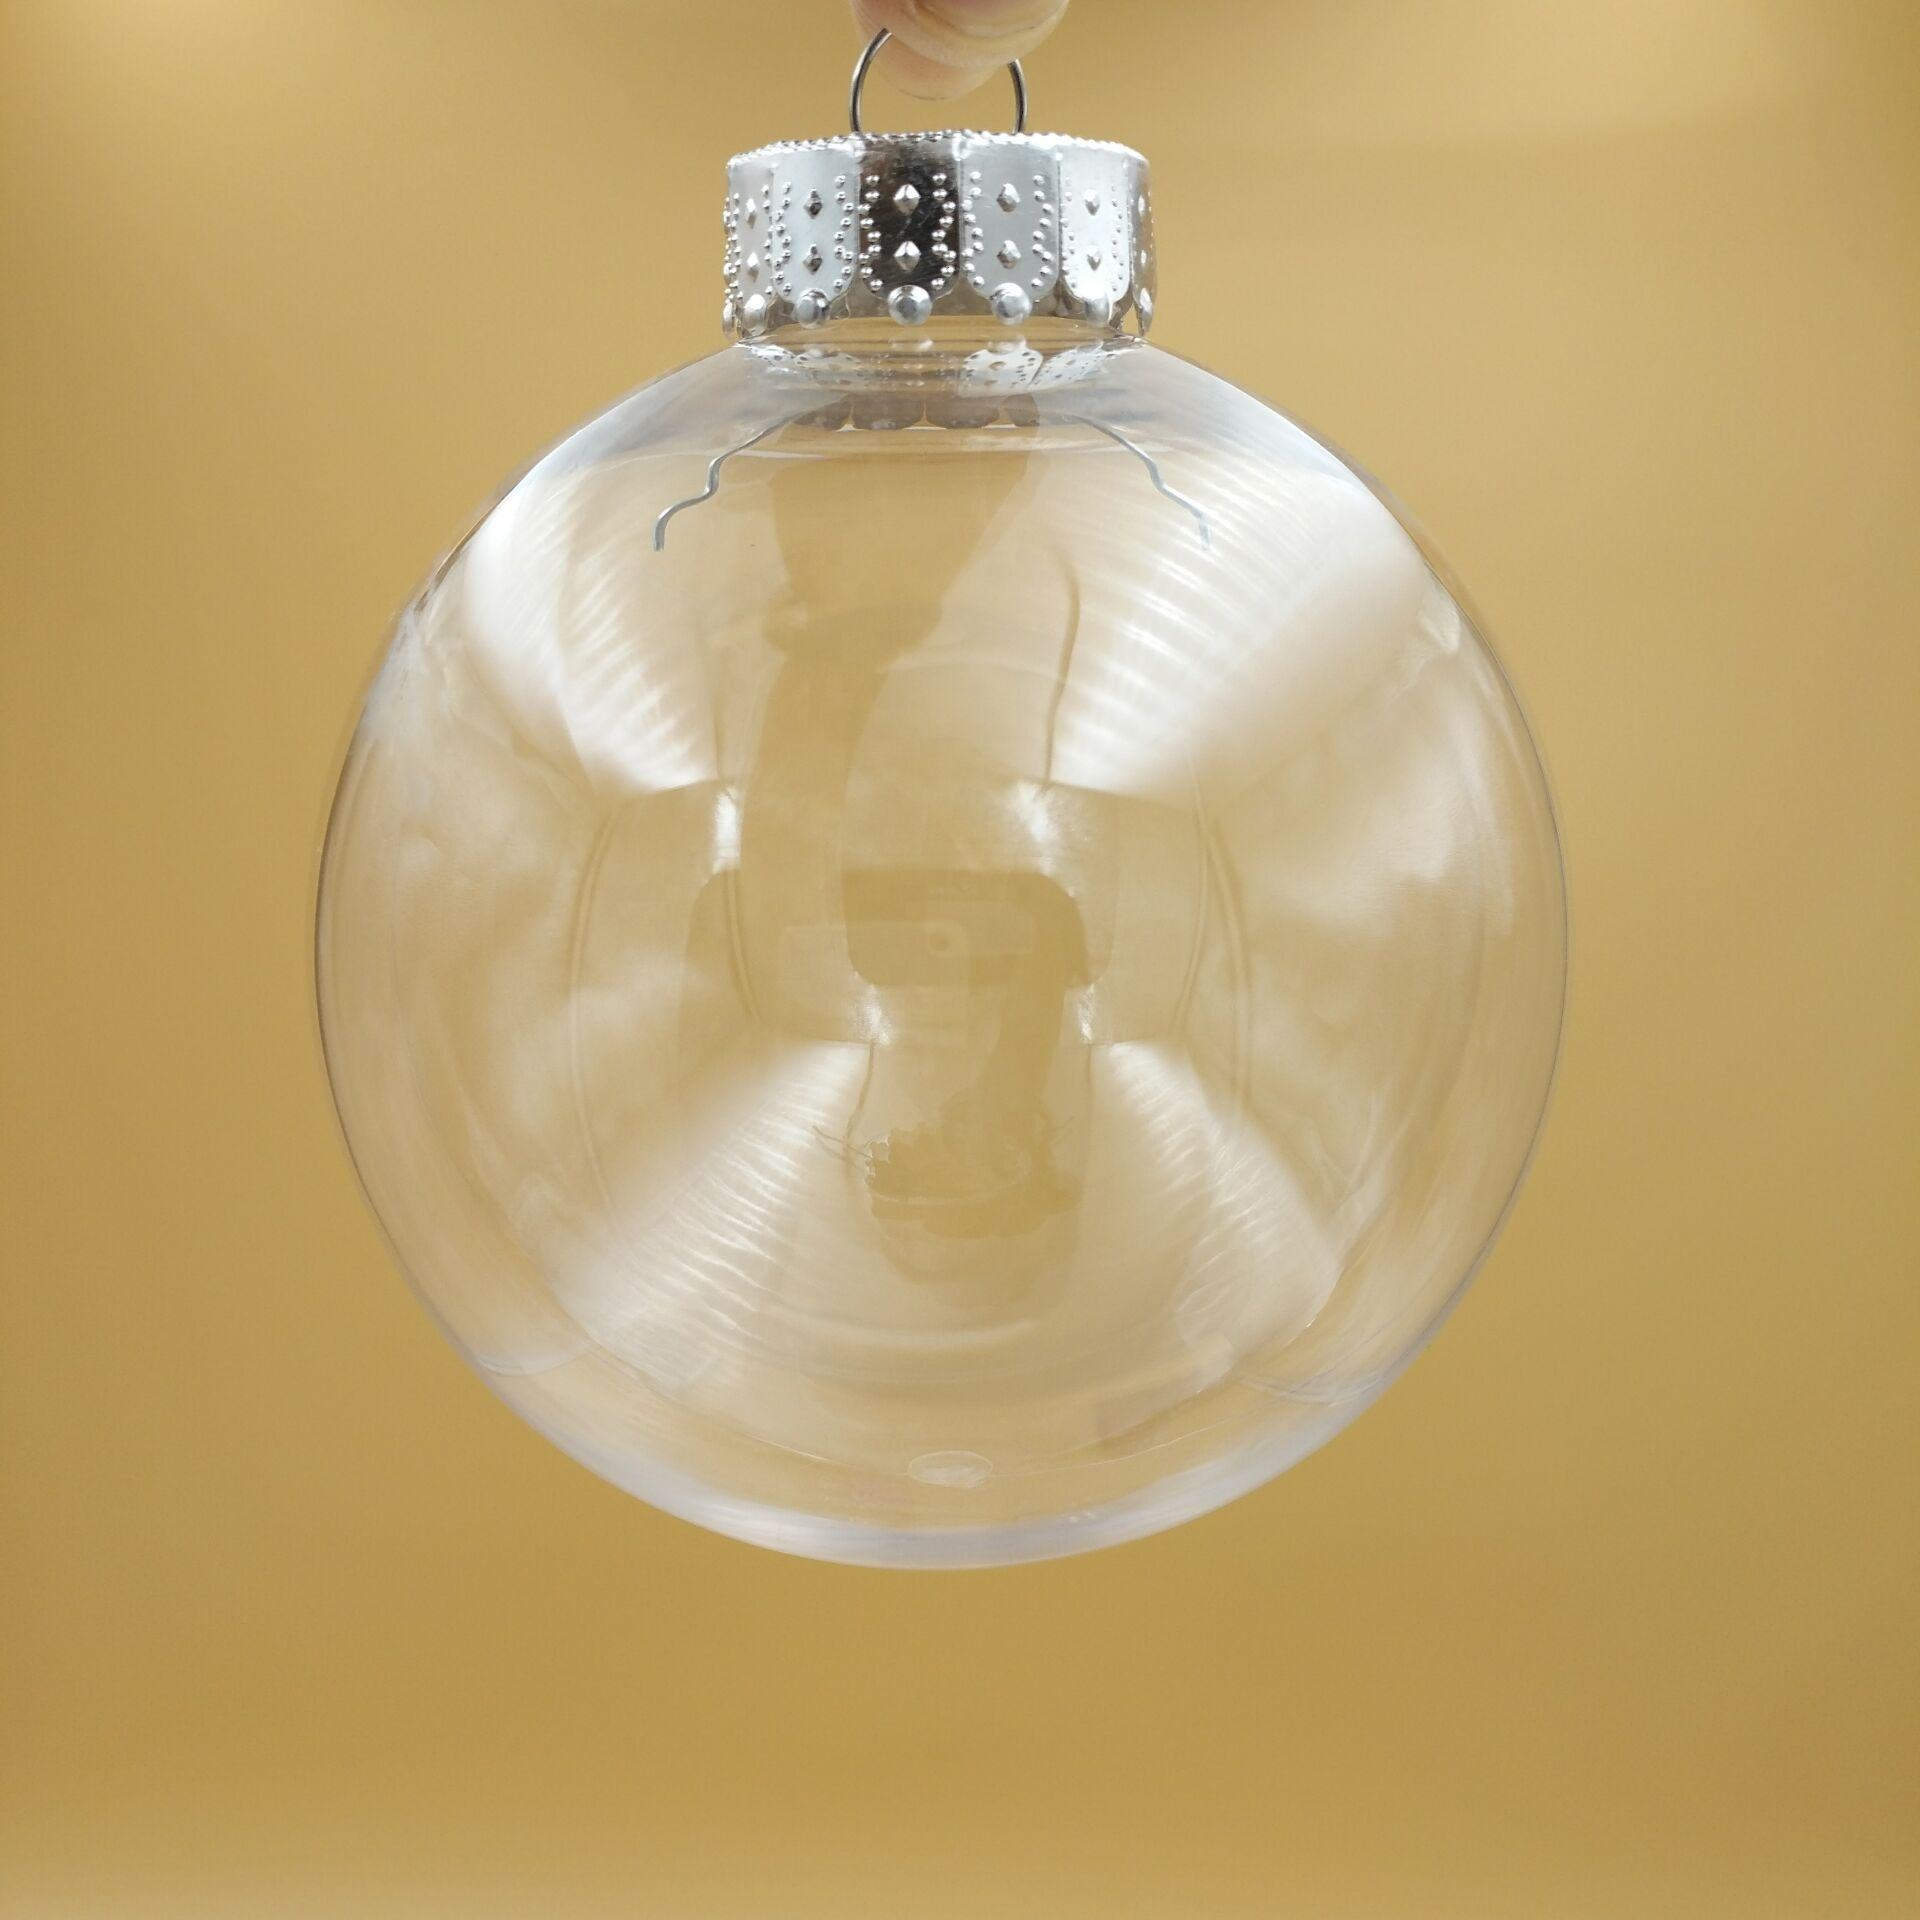 factory supply 8cm clear plastic christmas ball ornament